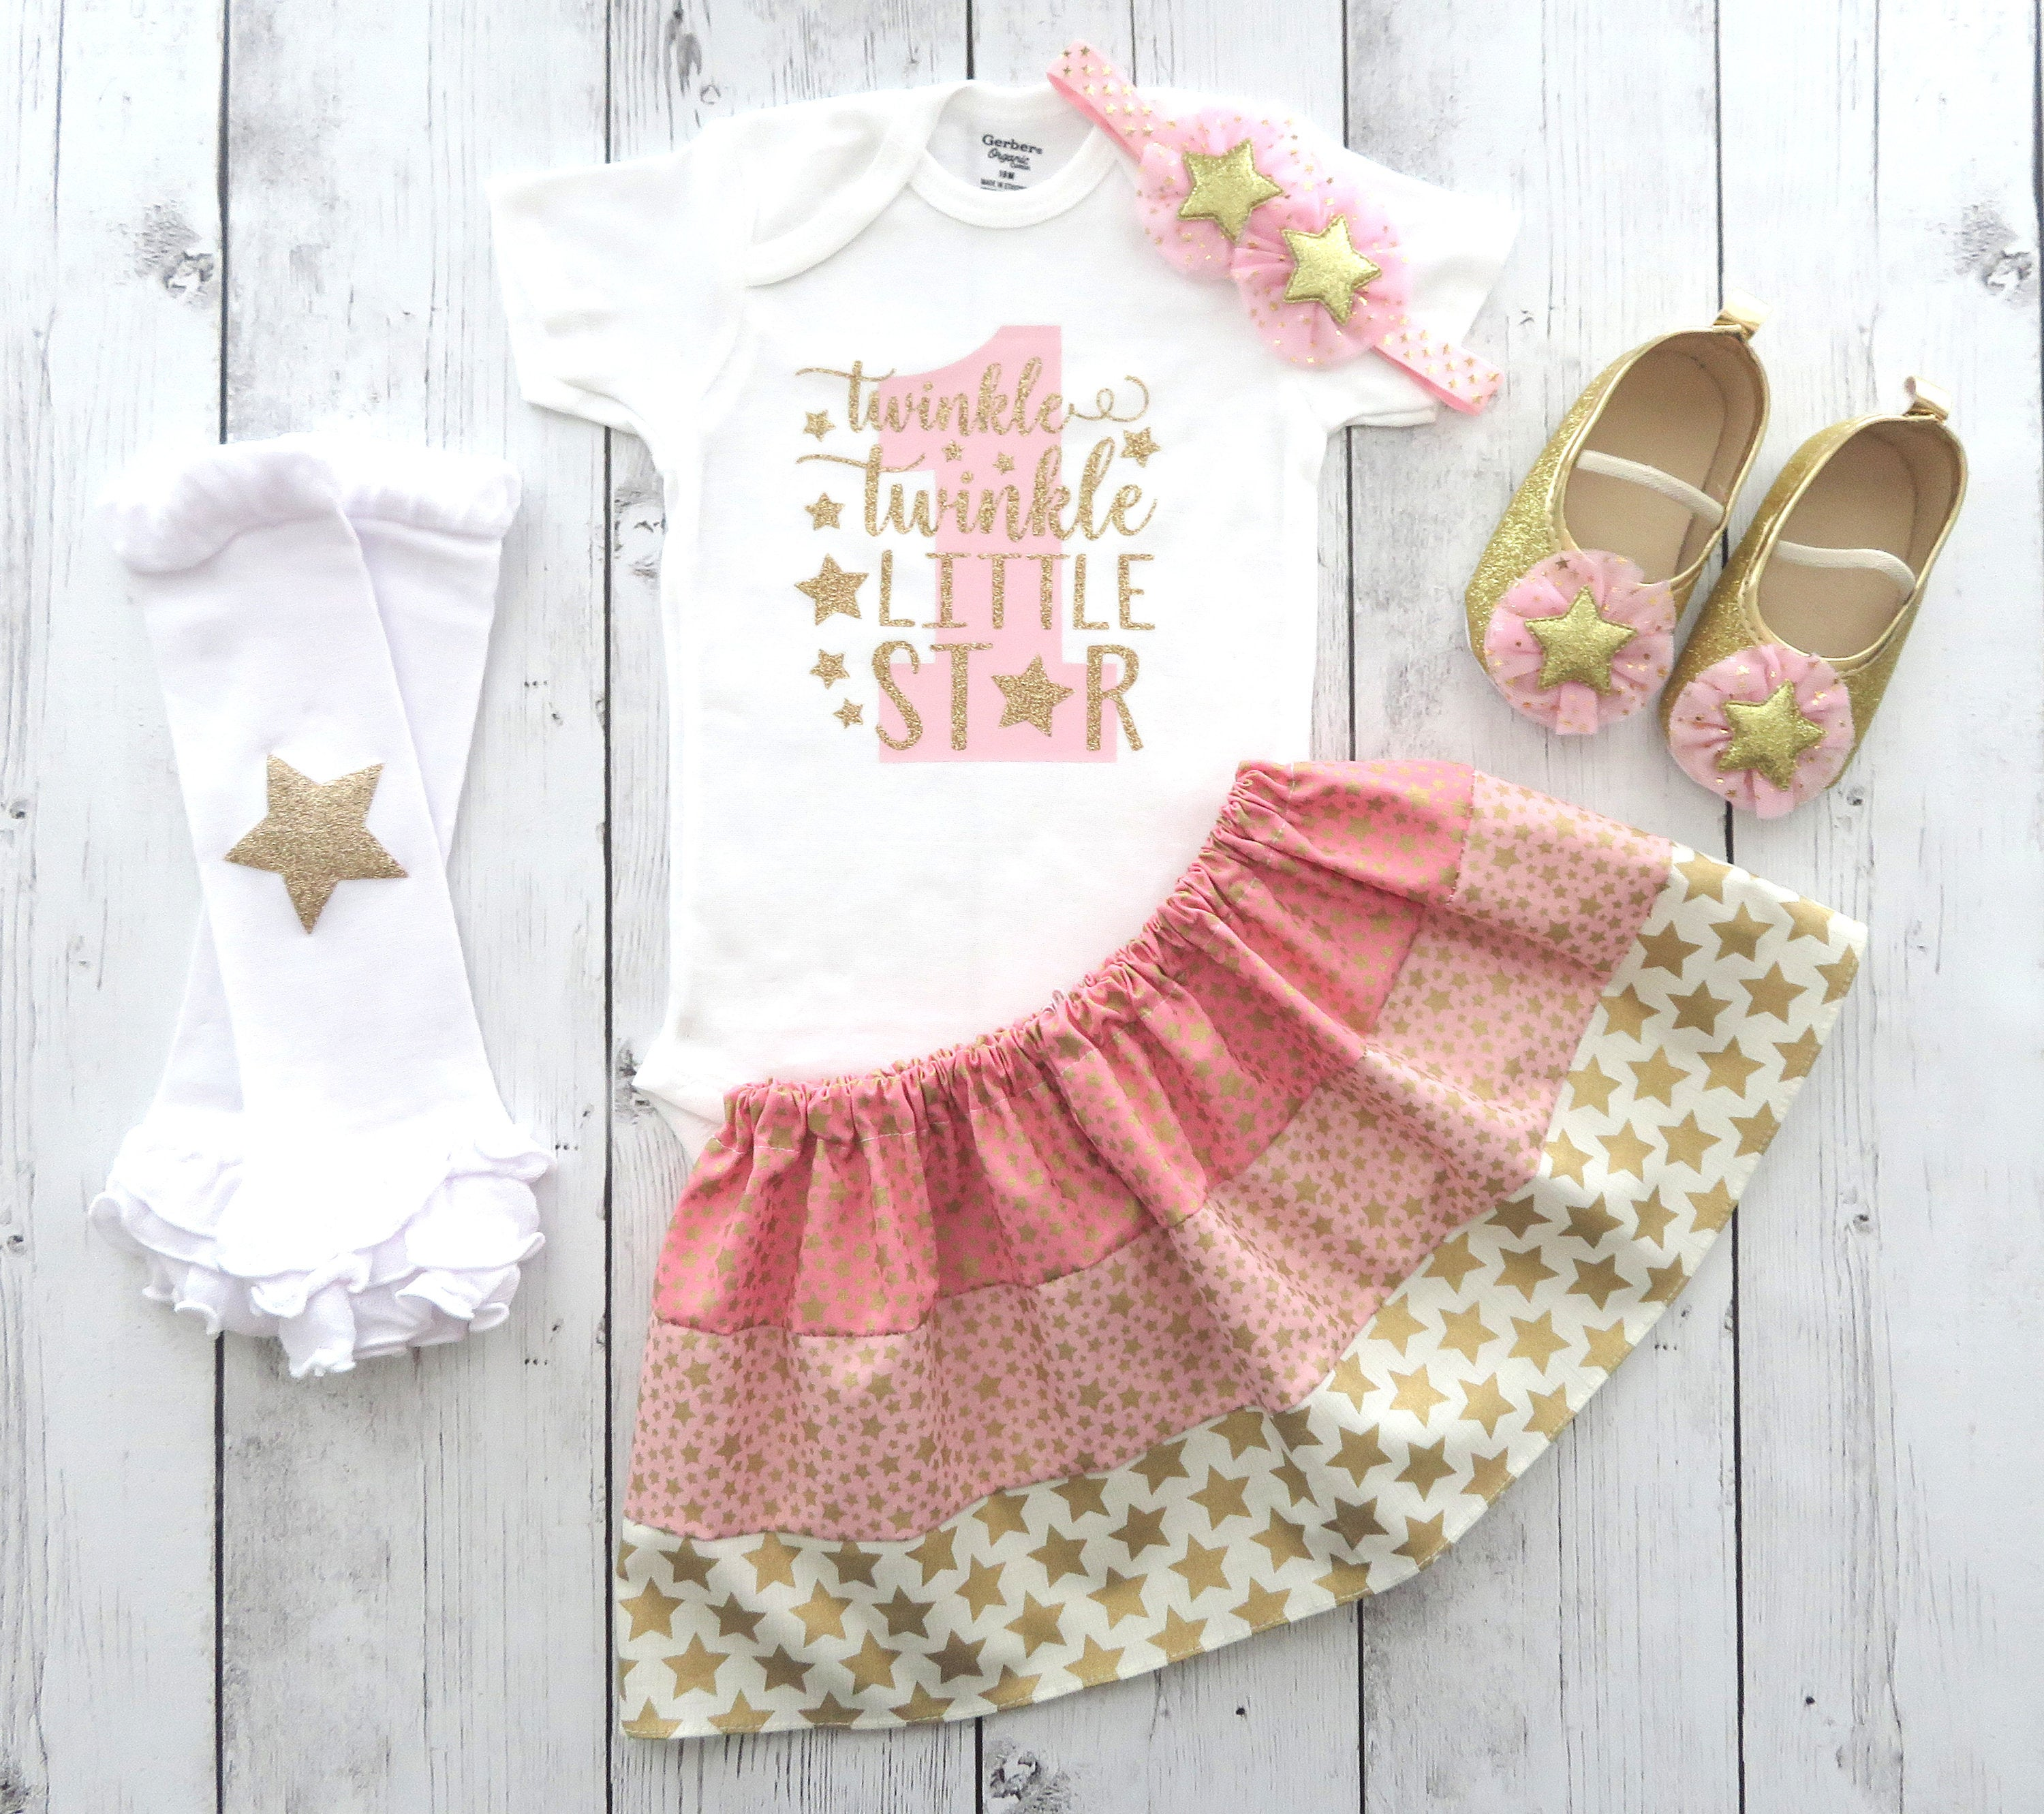 LAST ONE! - Twinkle Twinkle Little Star First Birthday Outfit in pink and gold - star shoes, twinkle bday outfit, star 1st bday girl